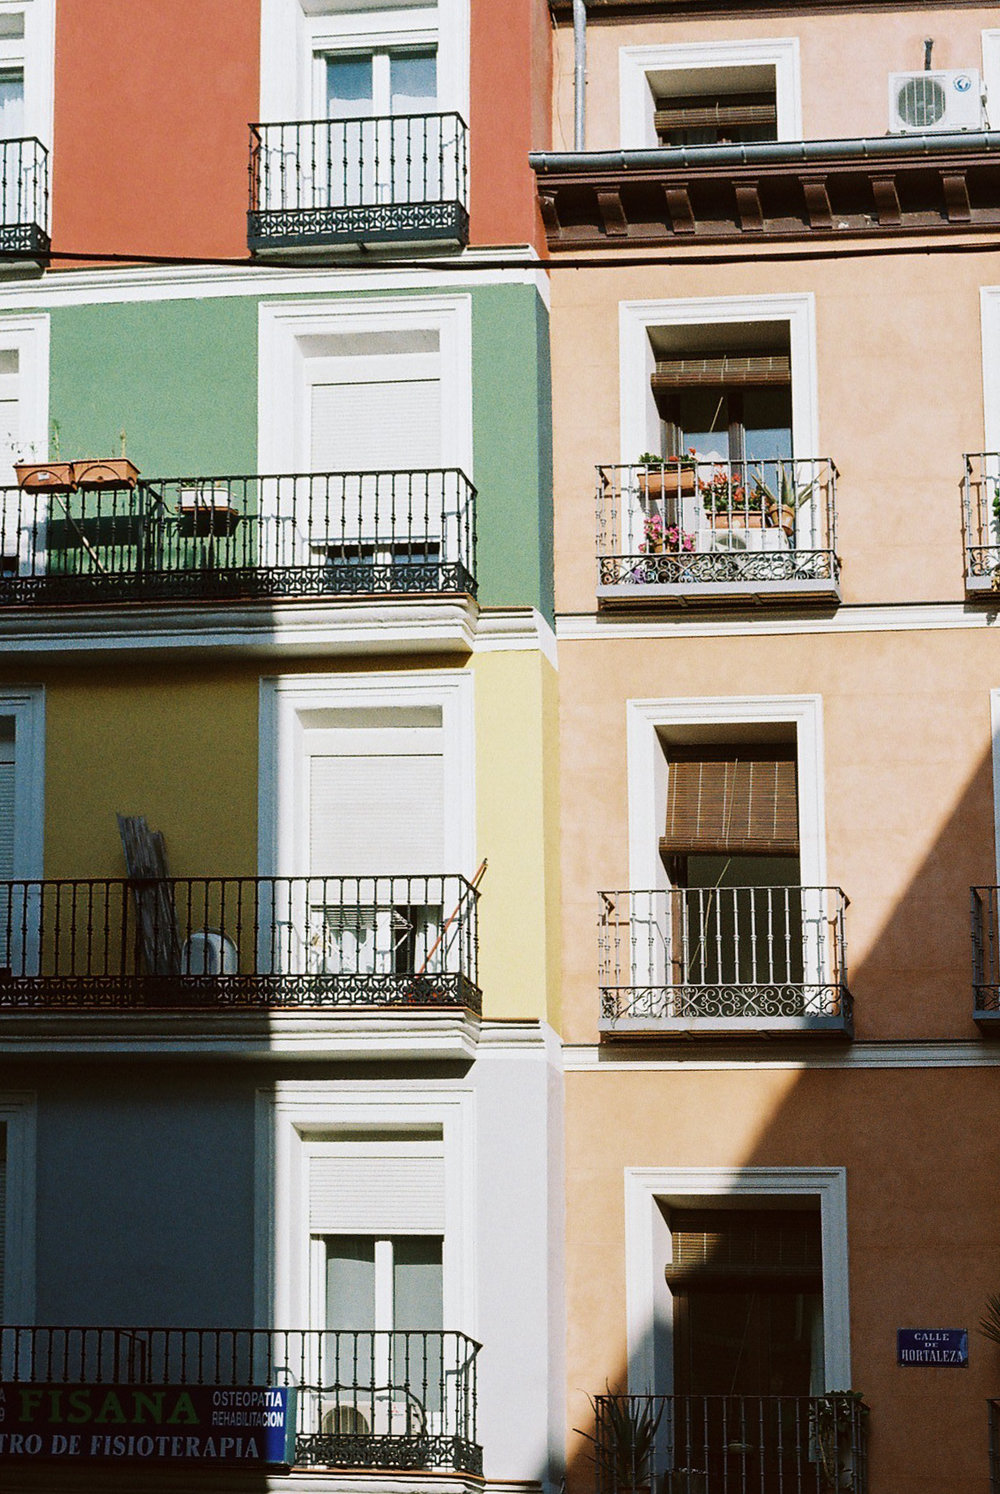 Copy of Chueca, Madrid (35mm)